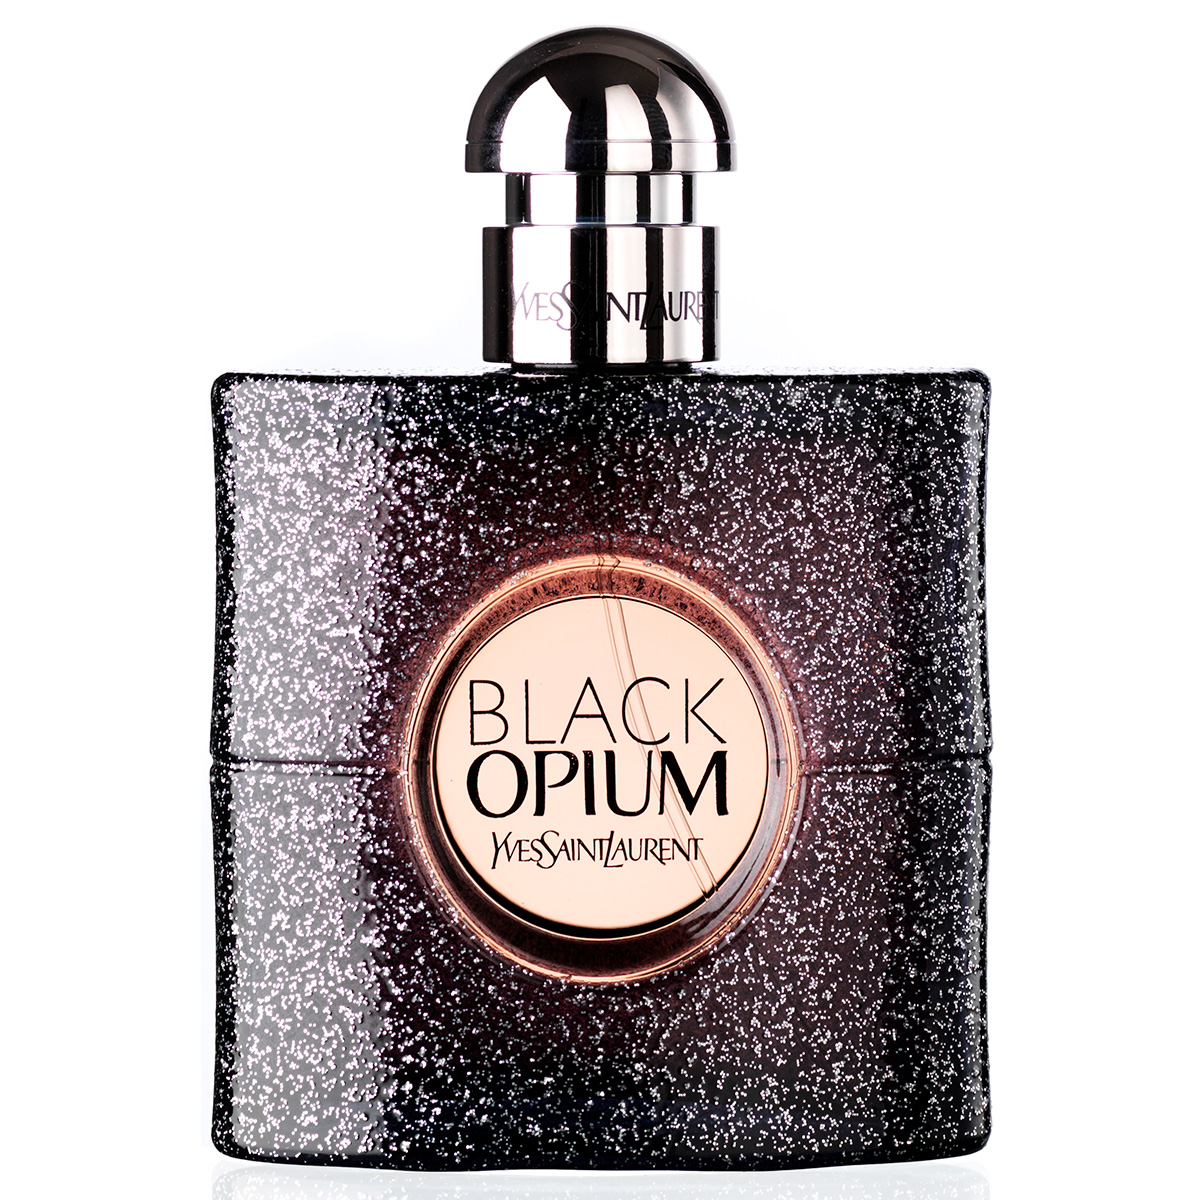 Yves Saint Laurent Black Opium Nuit Blanche EdP - 50 ml